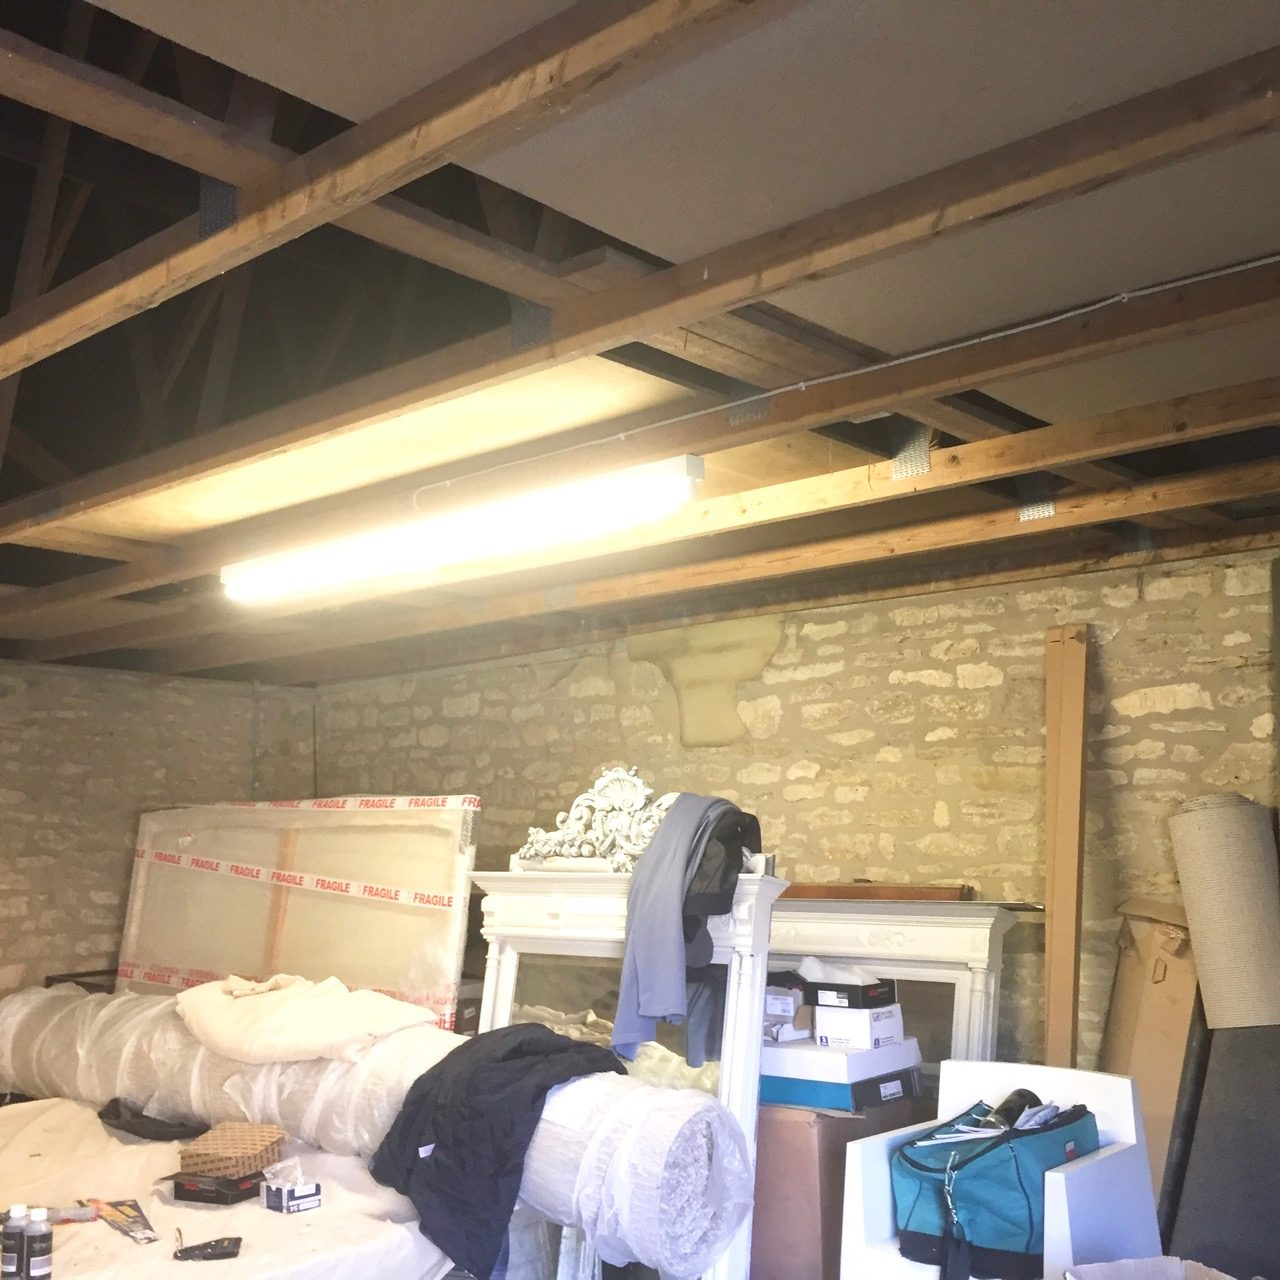 the original interior of the garage with all our junk